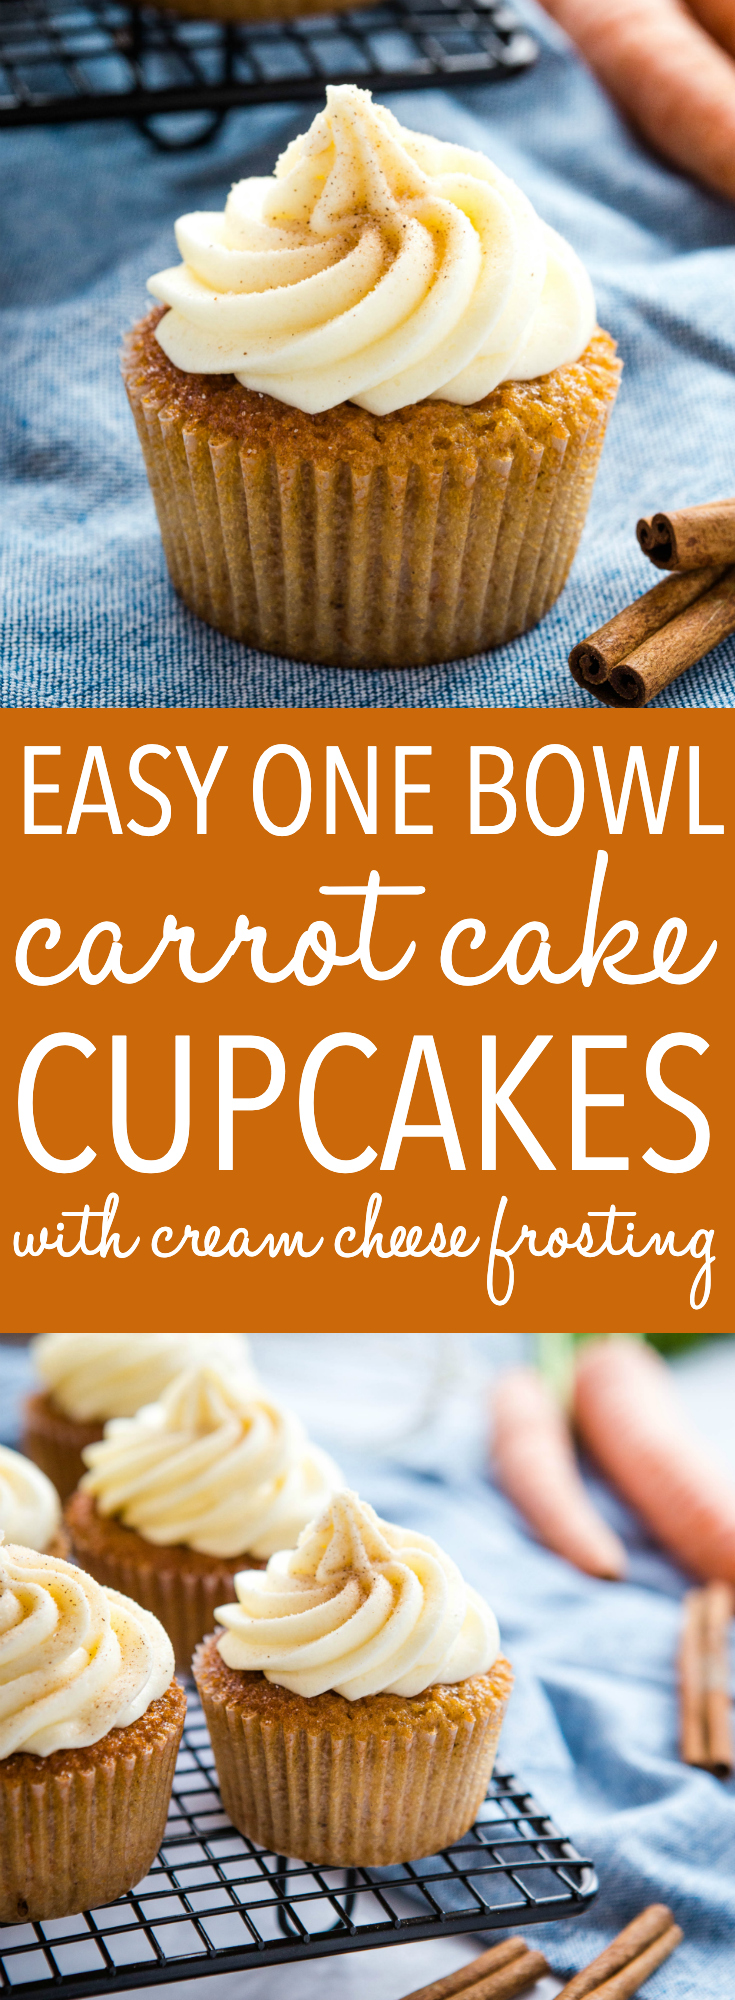 These Best Ever Carrot Cake Cupcakes are the perfect Easter dessert for carrot cake lovers! A simple one-bowl carrot cake recipe with fluffy cream cheese frosting and cinnamon spice! Recipe from thebusybaker.ca! #carrotcake #cupcakes #carrotcupcakes #creamcheesefrosting #easter #spring #homemade #dessert #recipe via @busybakerblog